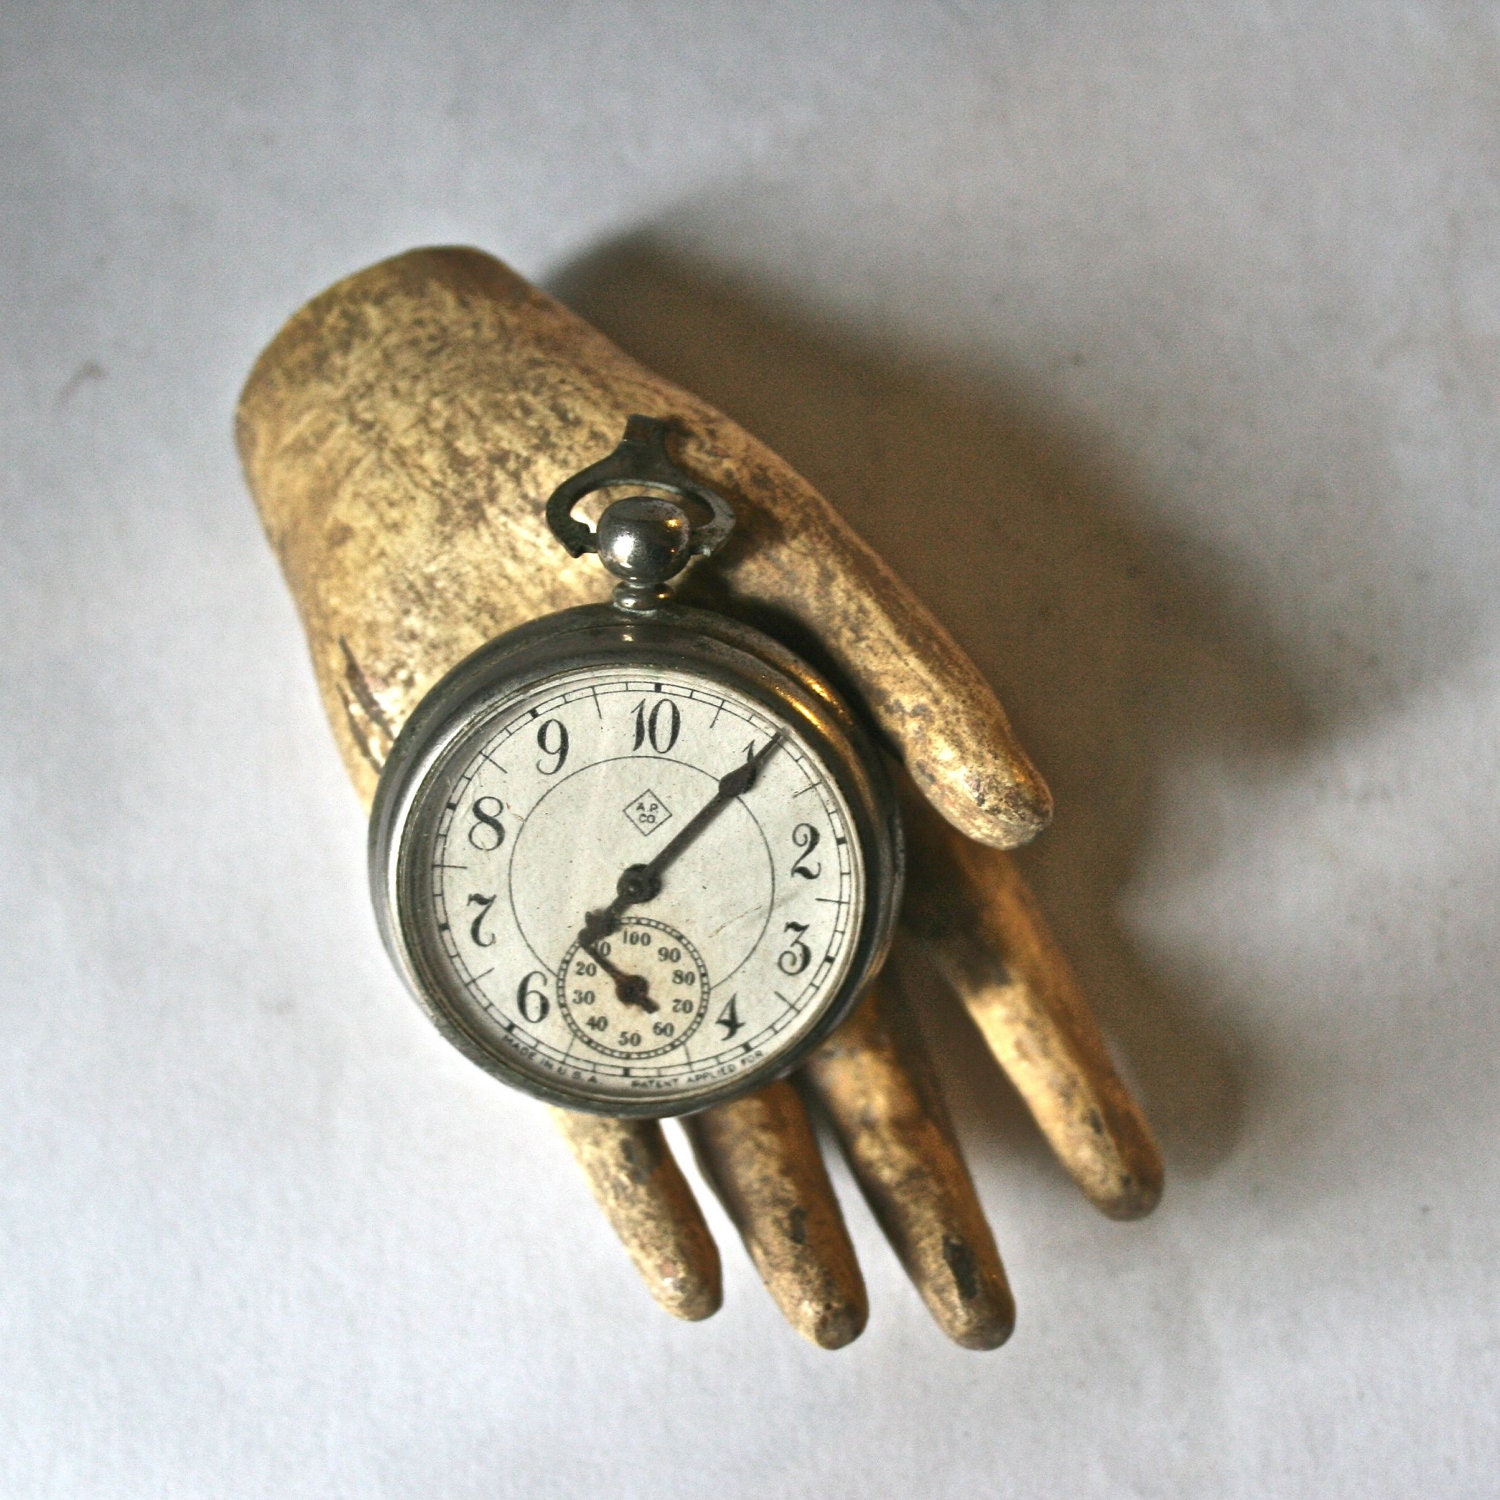 Antique Intact Non-Functioning Pocket Watch with Hook for Steampunk Altered Art - ReminiscencePapers